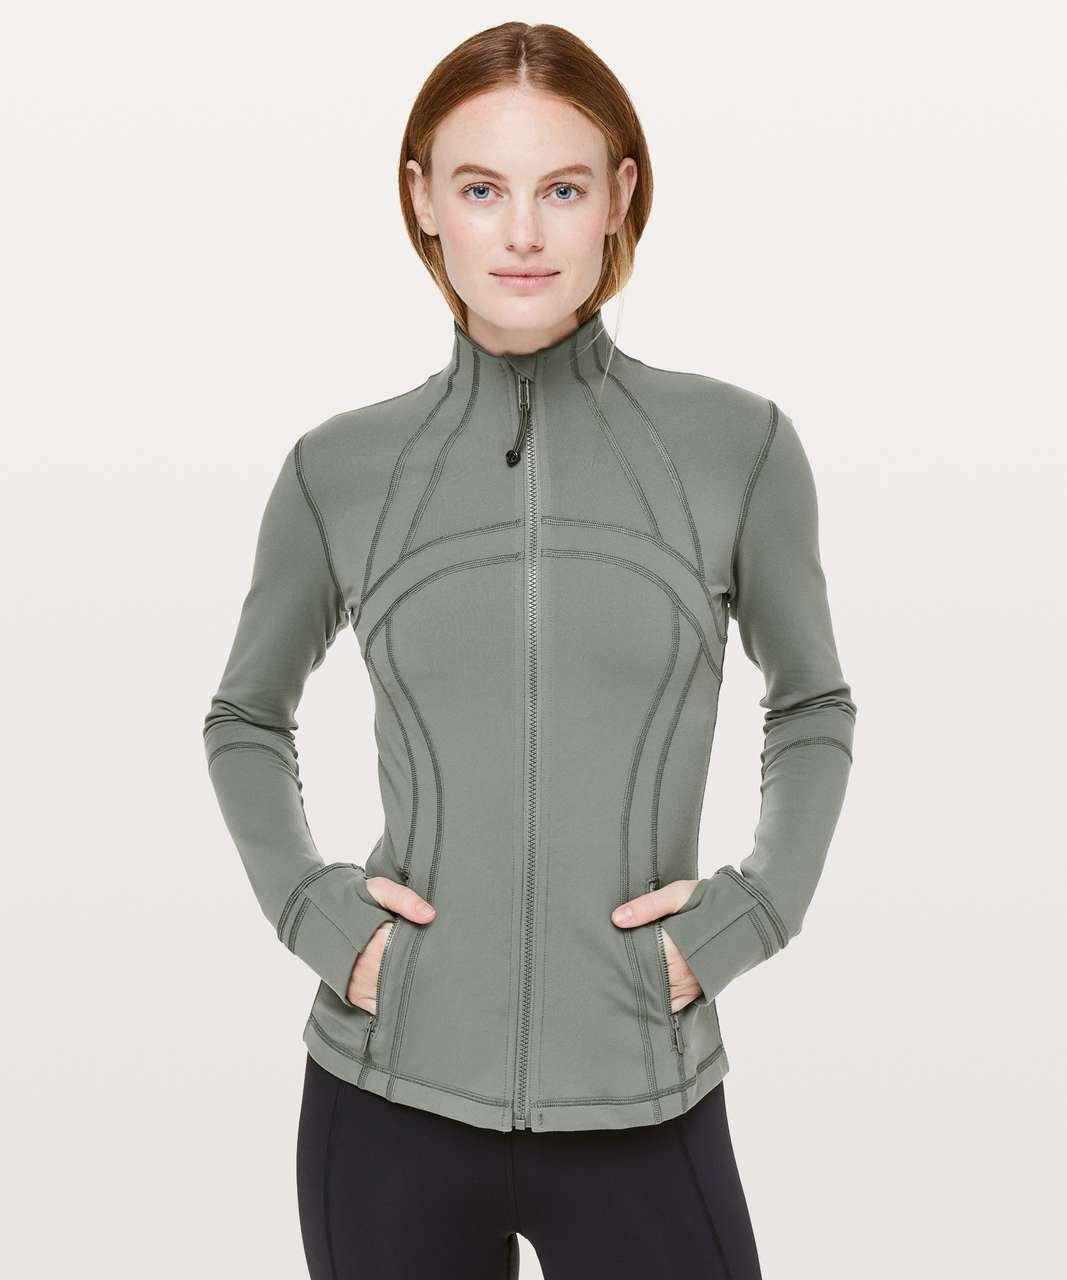 Lululemon Define Jacket - Misty Meadow